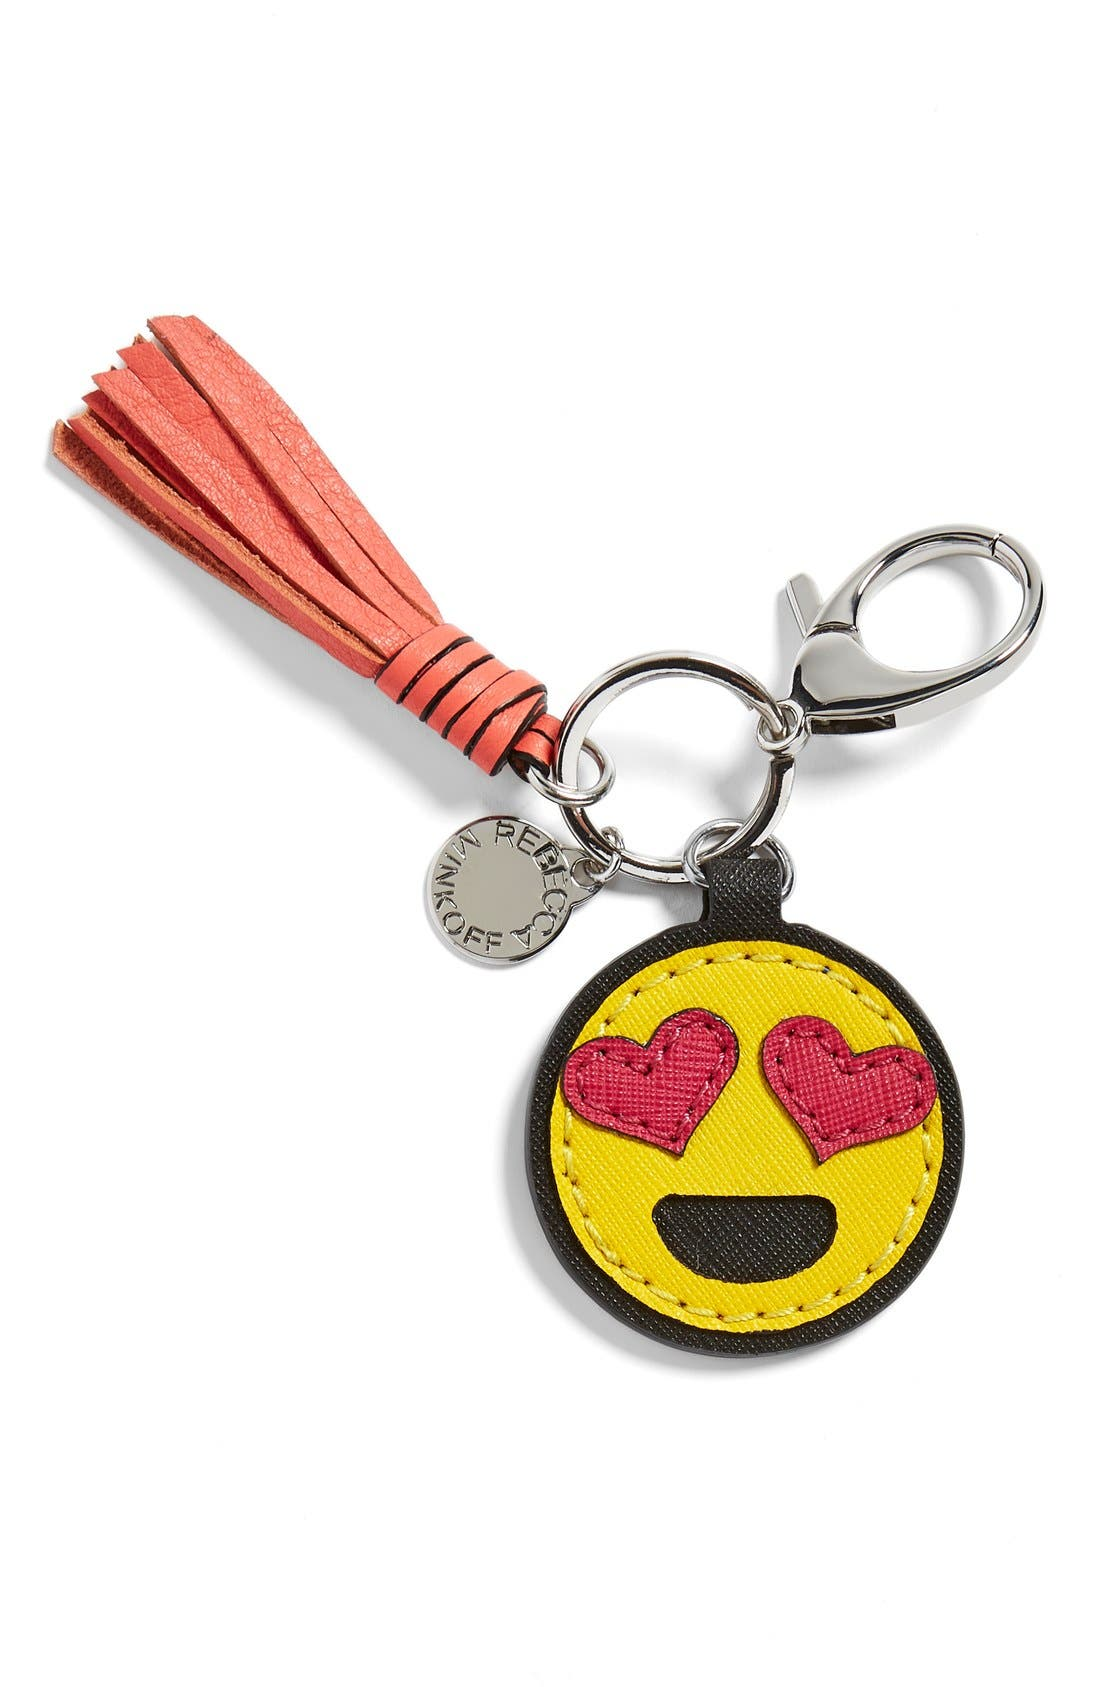 'Hubba Hubba' Bag Charm,                         Main,                         color, 700